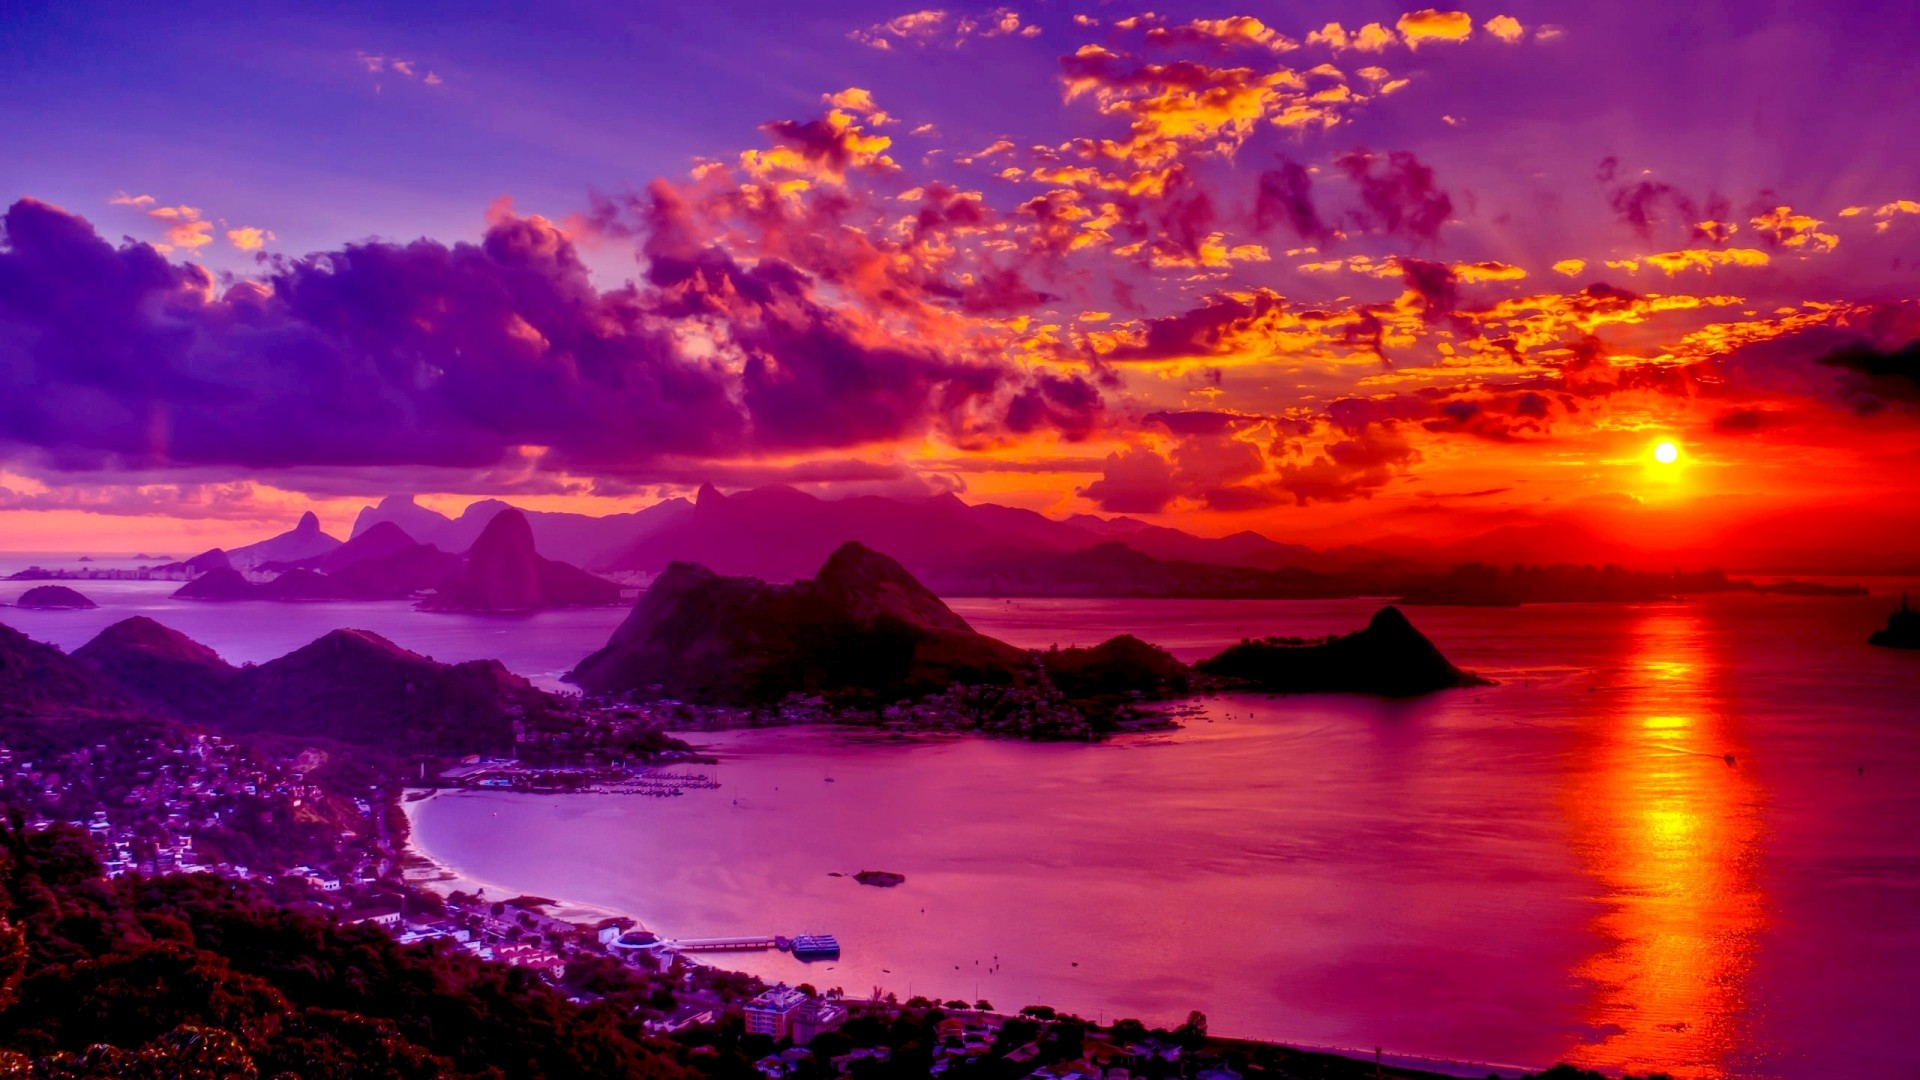 Fabulous Sunset Wide Wallpaper 550061 Wallpapers13com 1920x1080